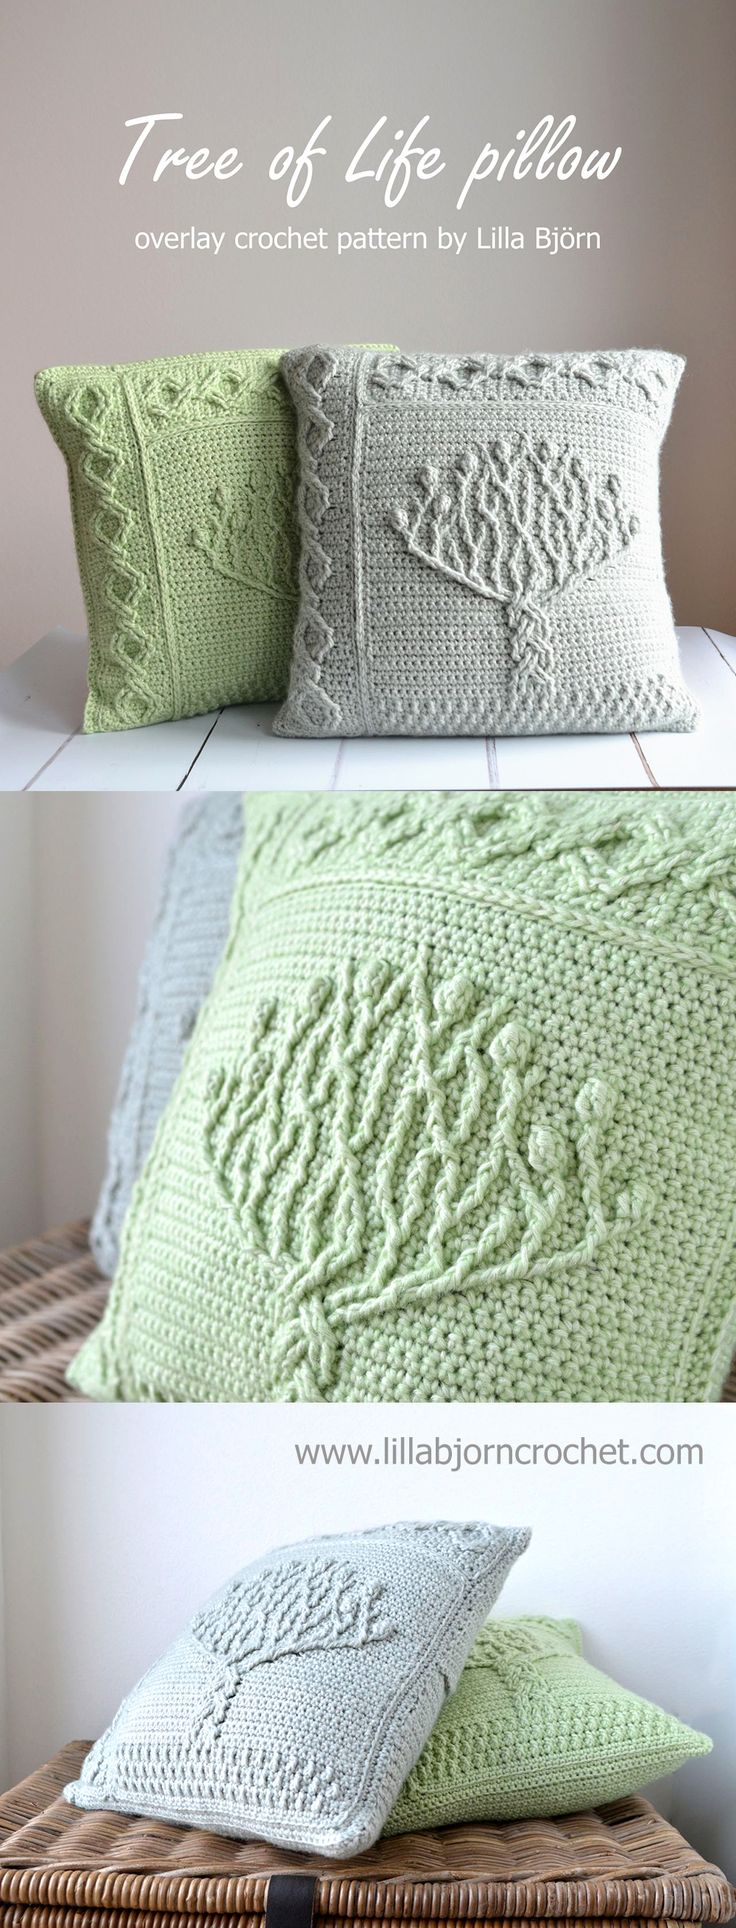 Tree of Life pillow - overlay crochet pattern by Lilla Bjorn. Tree panel can be used for a potholder or as afghan motif.